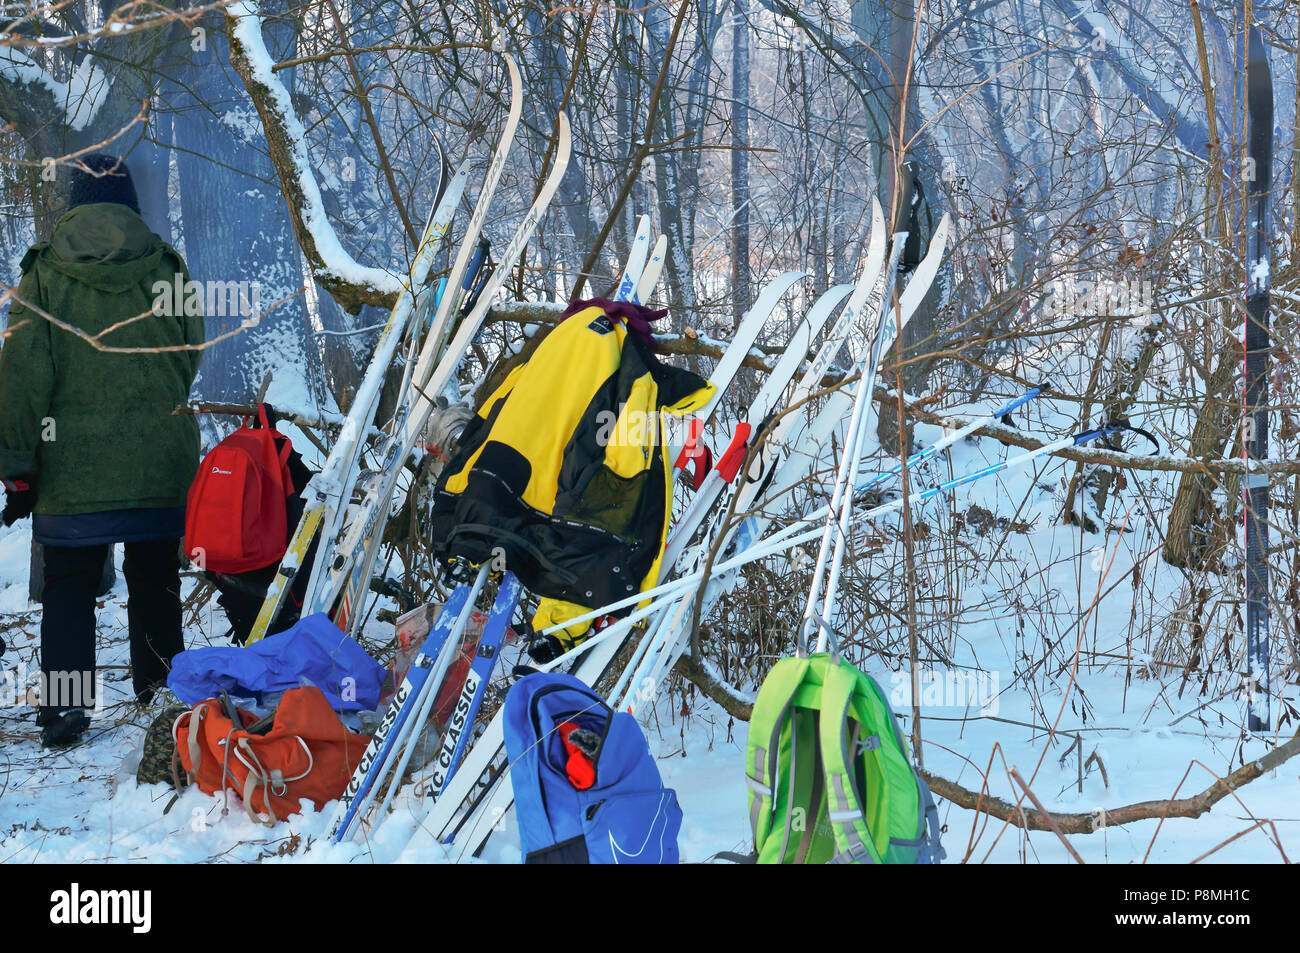 skiers resting in the forest, the ski has been standing near the tree, January 21, 2018, Kaliningrad, Russia - Stock Image